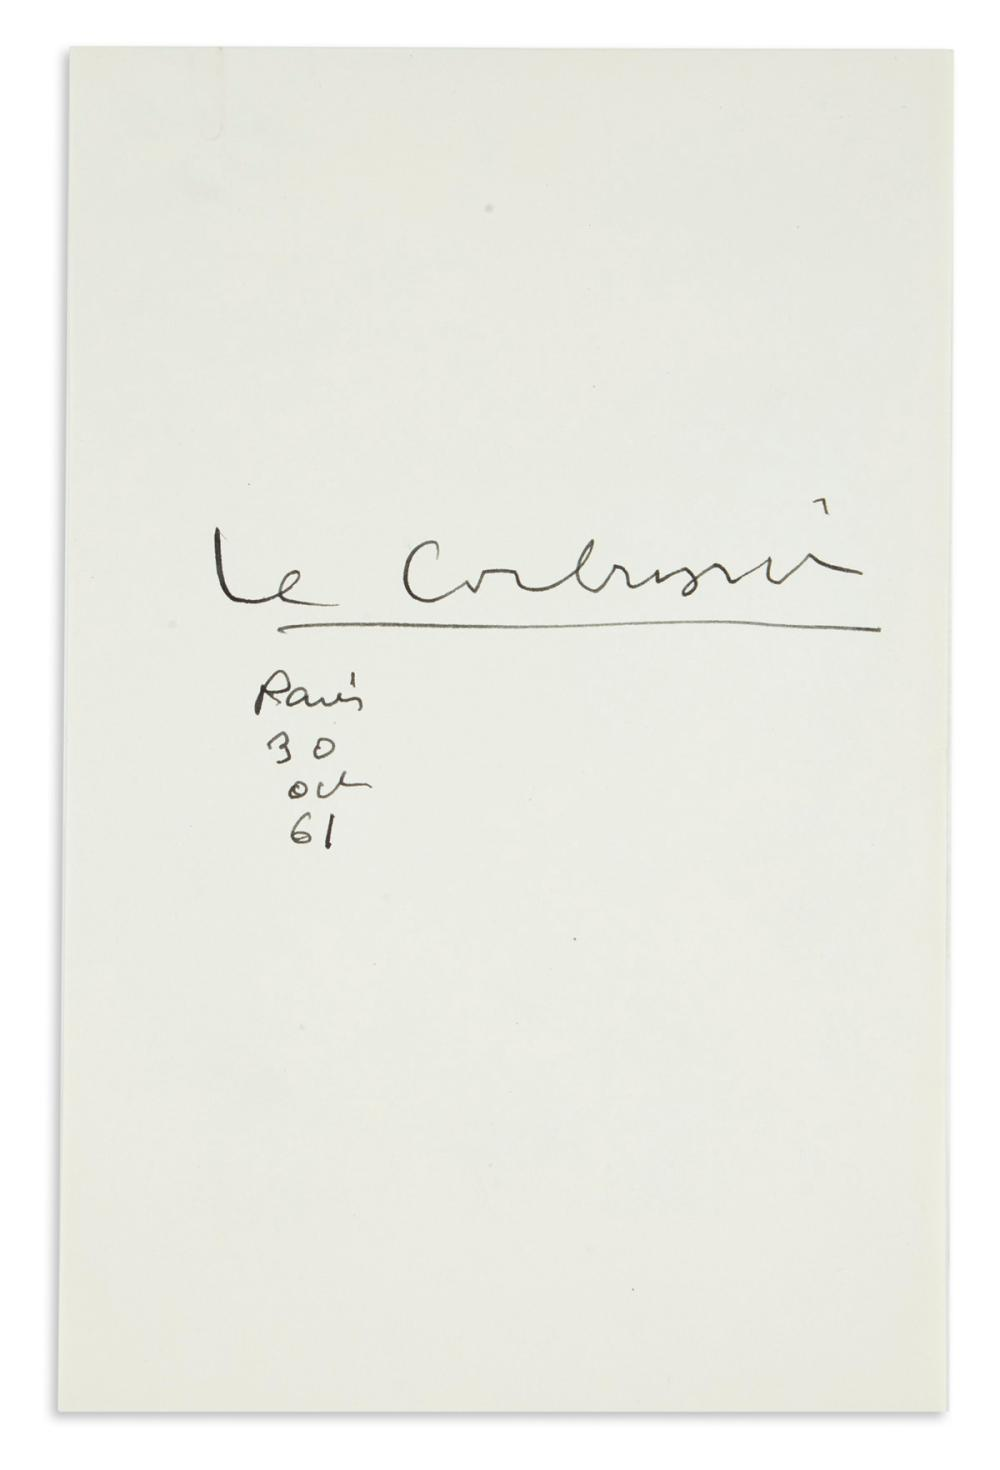 LE CORBUSIER. Signature and date on a slip of paper.